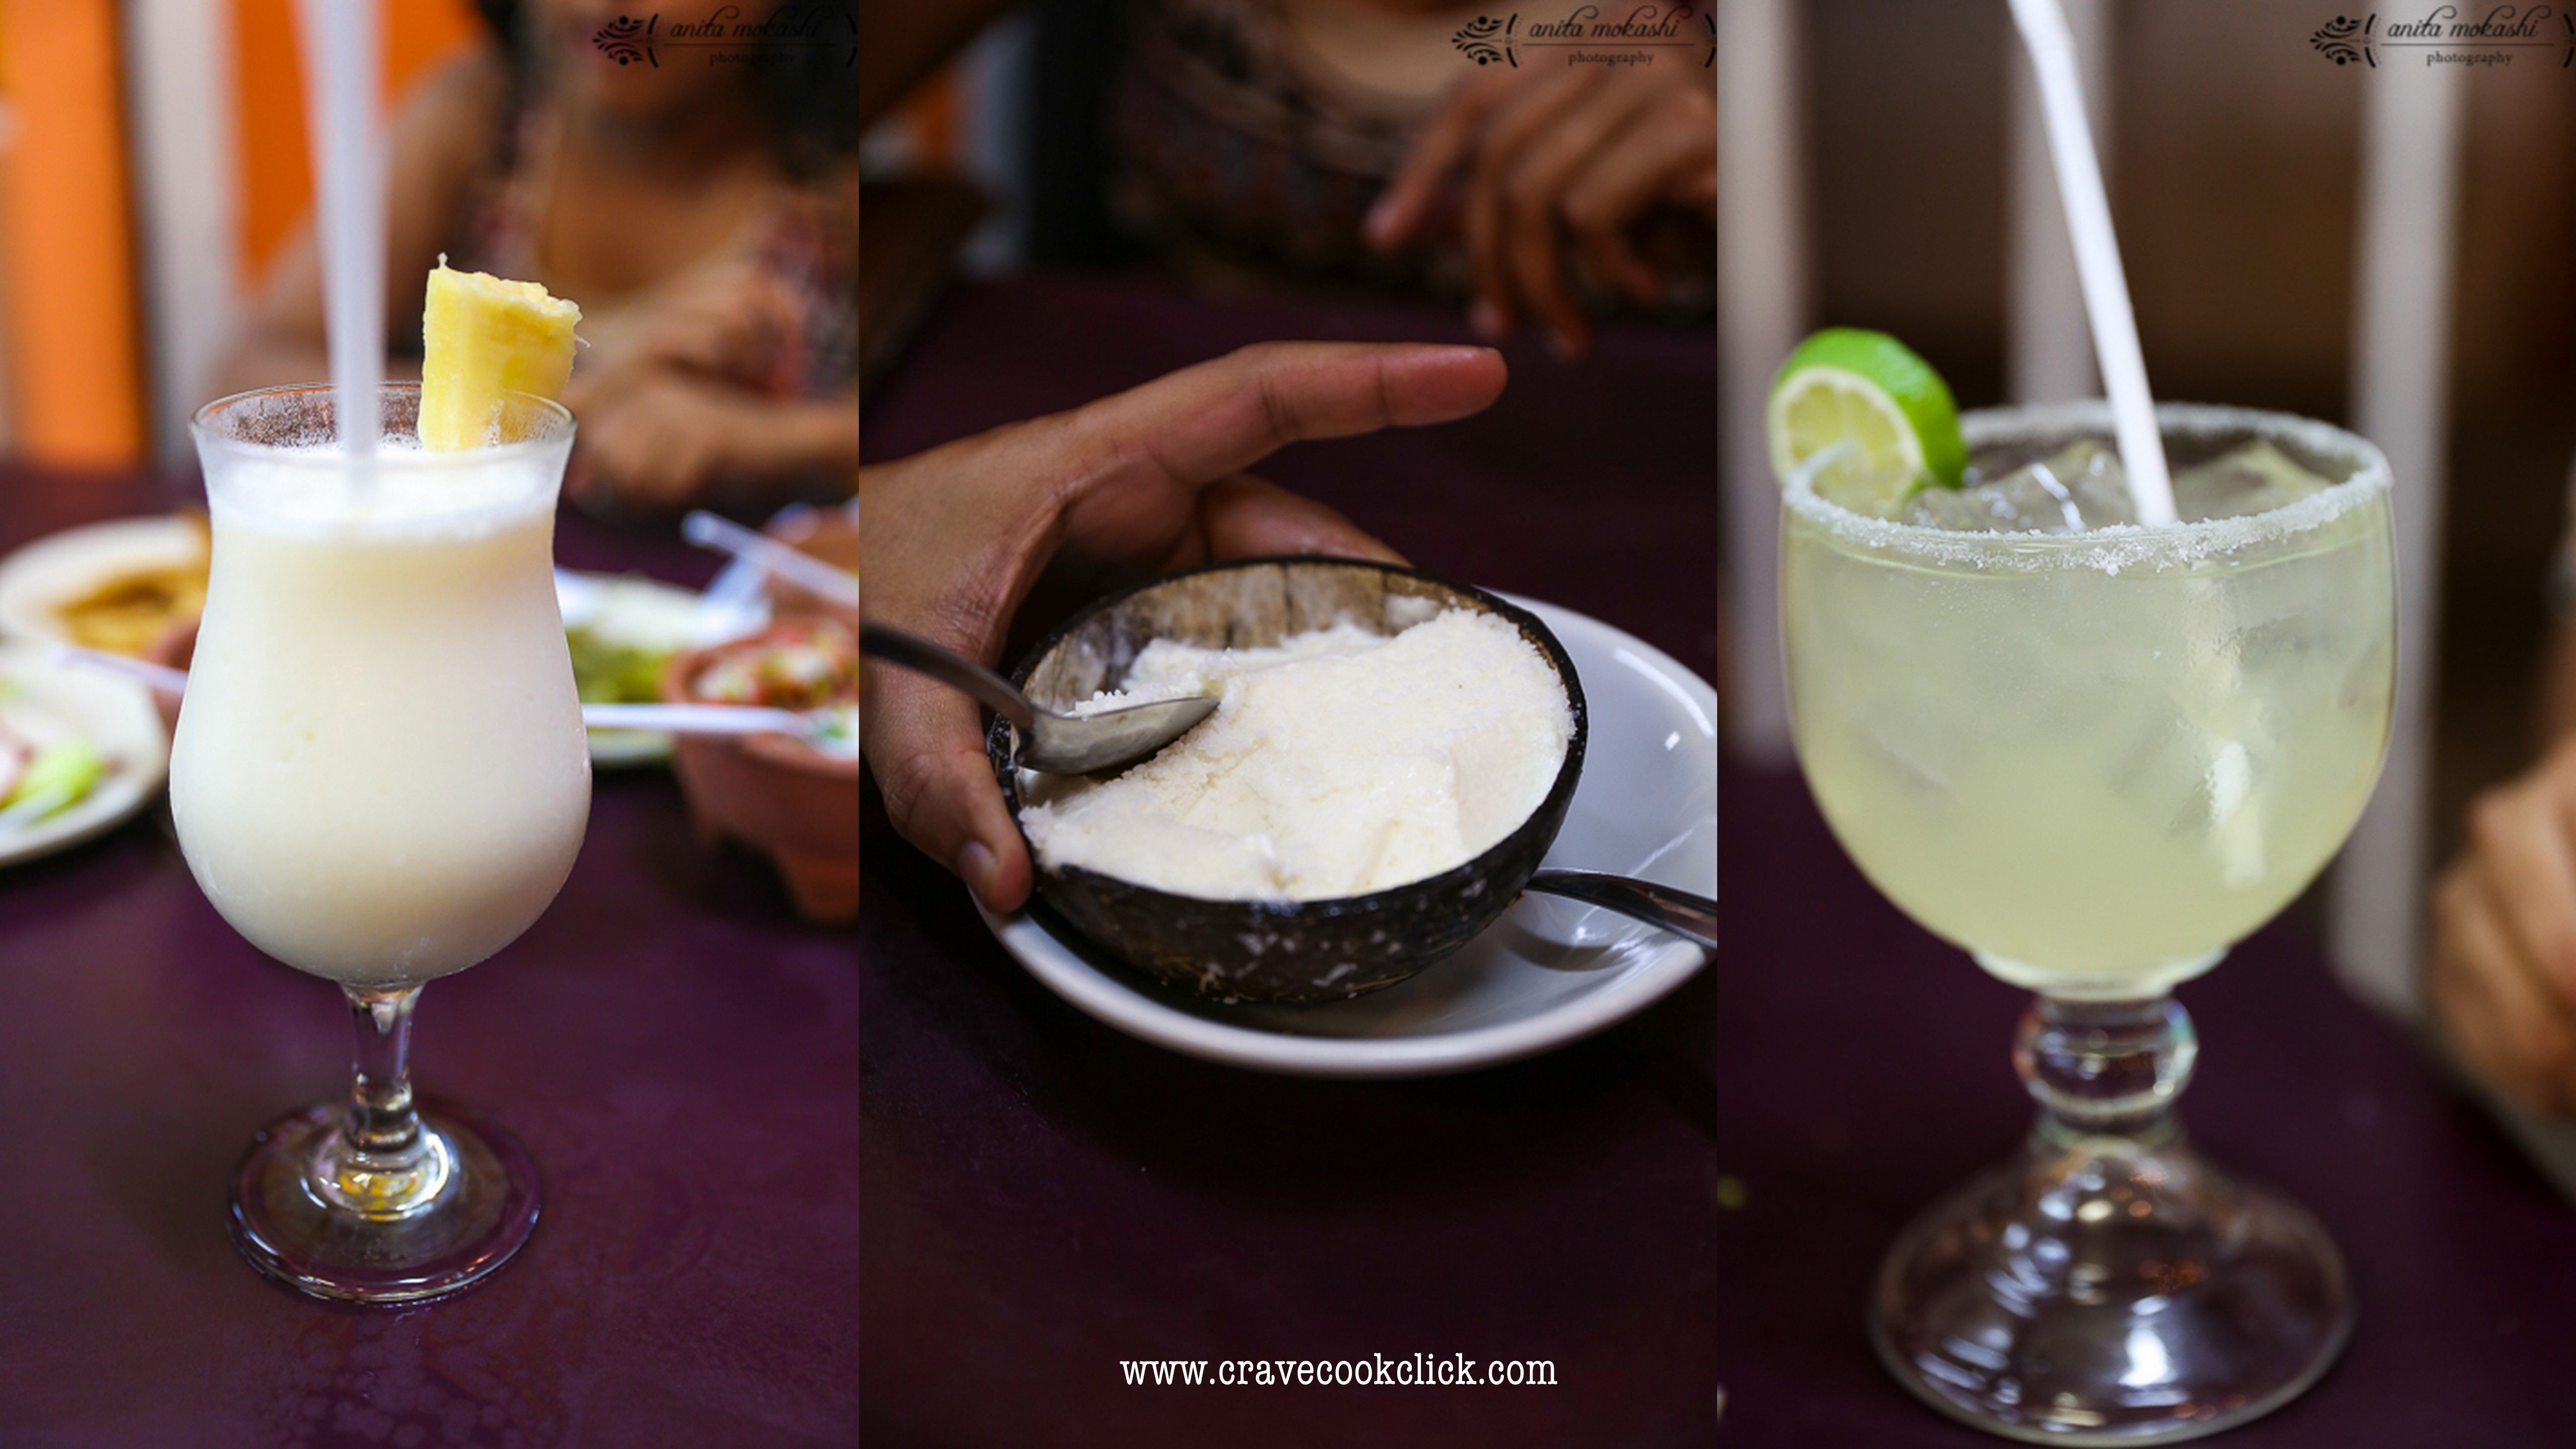 mexico food, playa del carmen, cancun, mexicanfood, recipes, travel, street food, restaurant review, adventure, travelling,